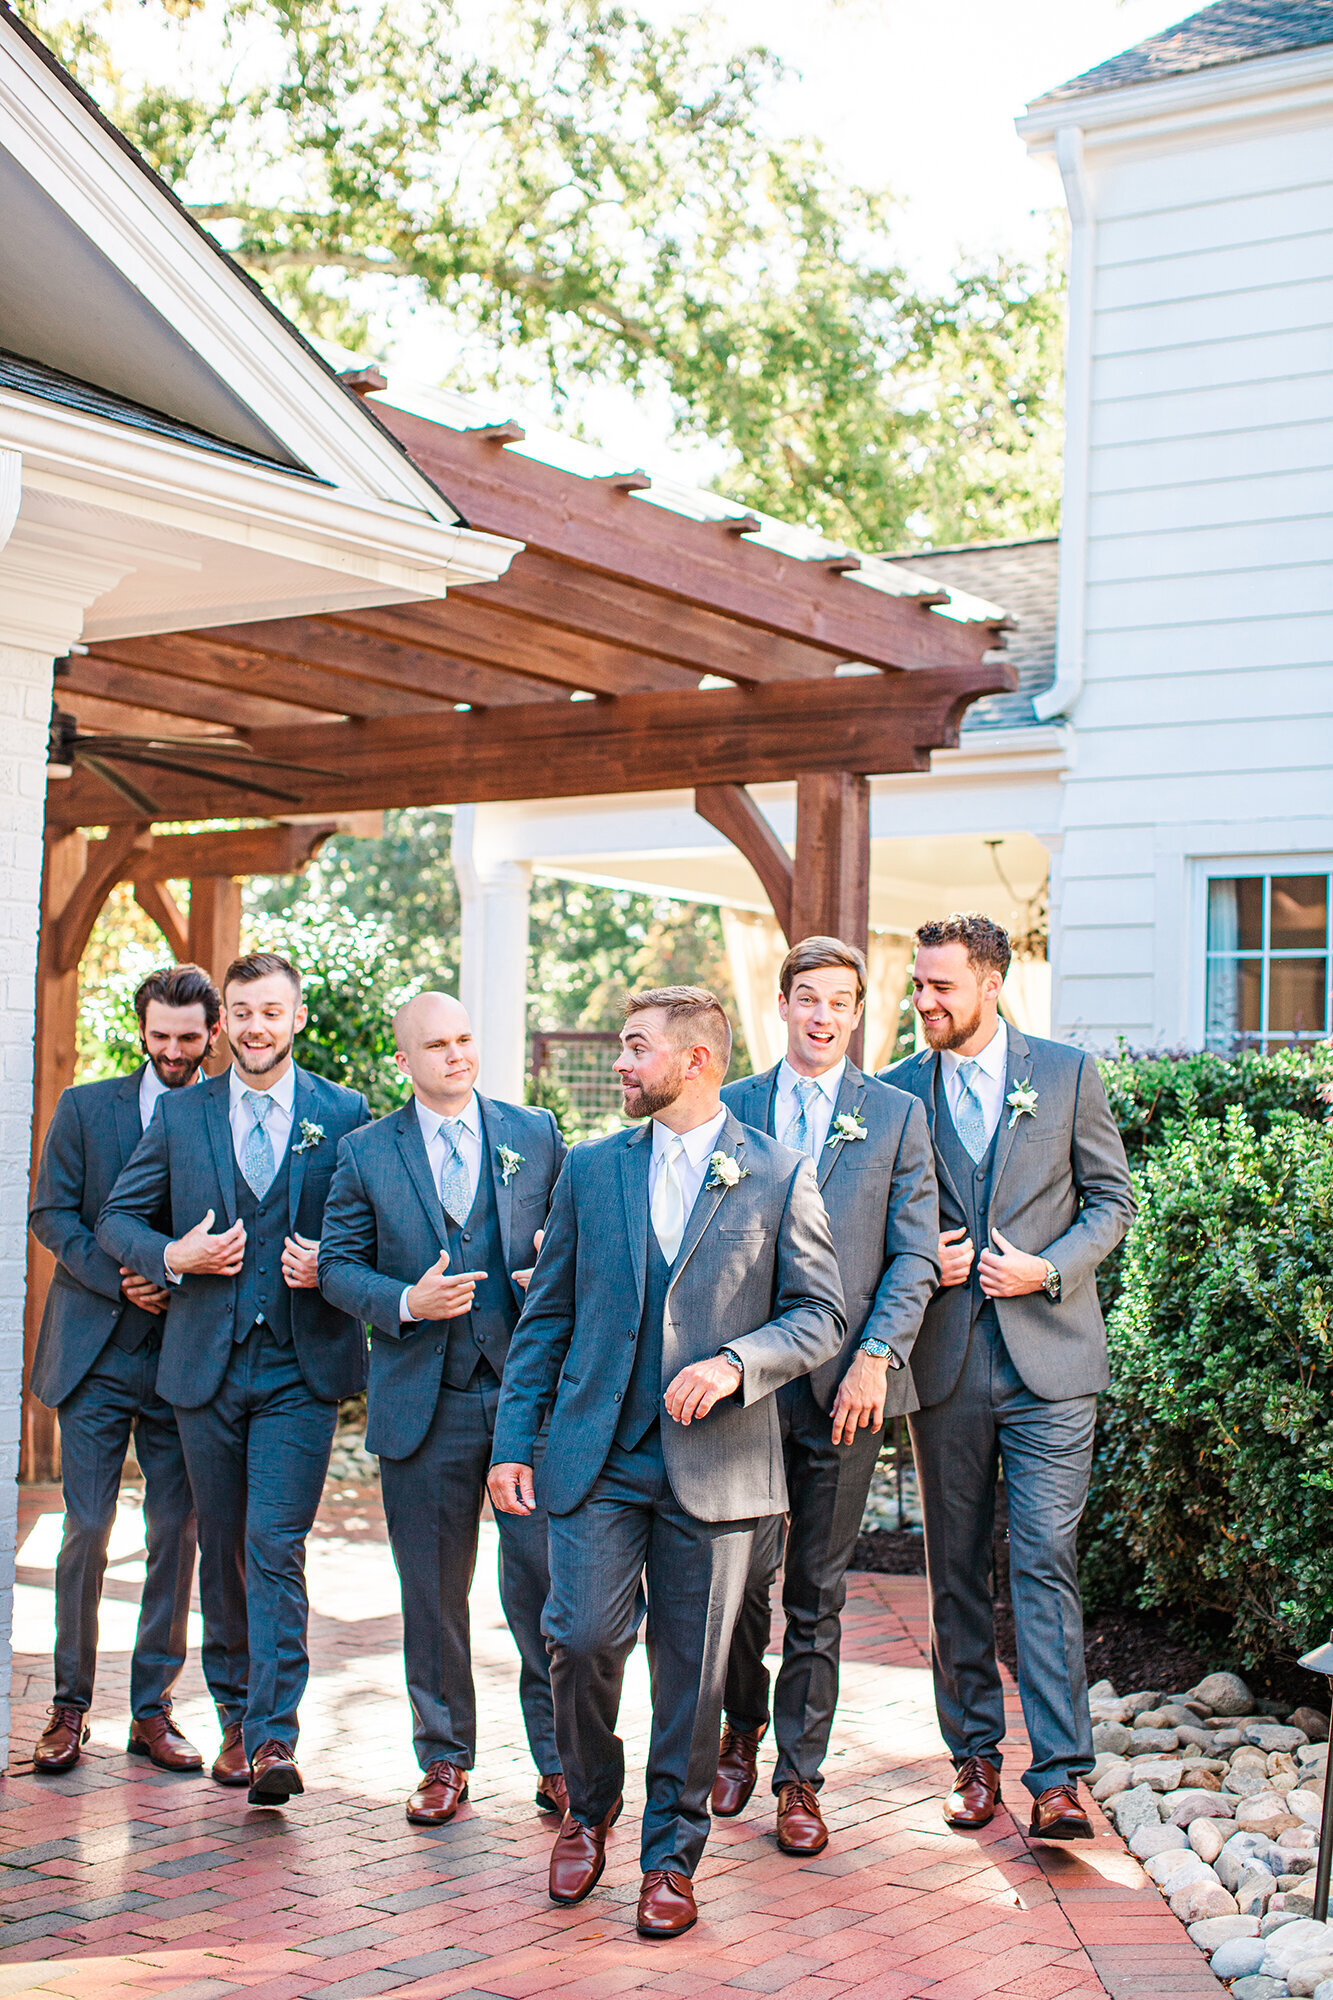 Groomsmen at a Raleigh NC wedding by Tierney Riggs Photography